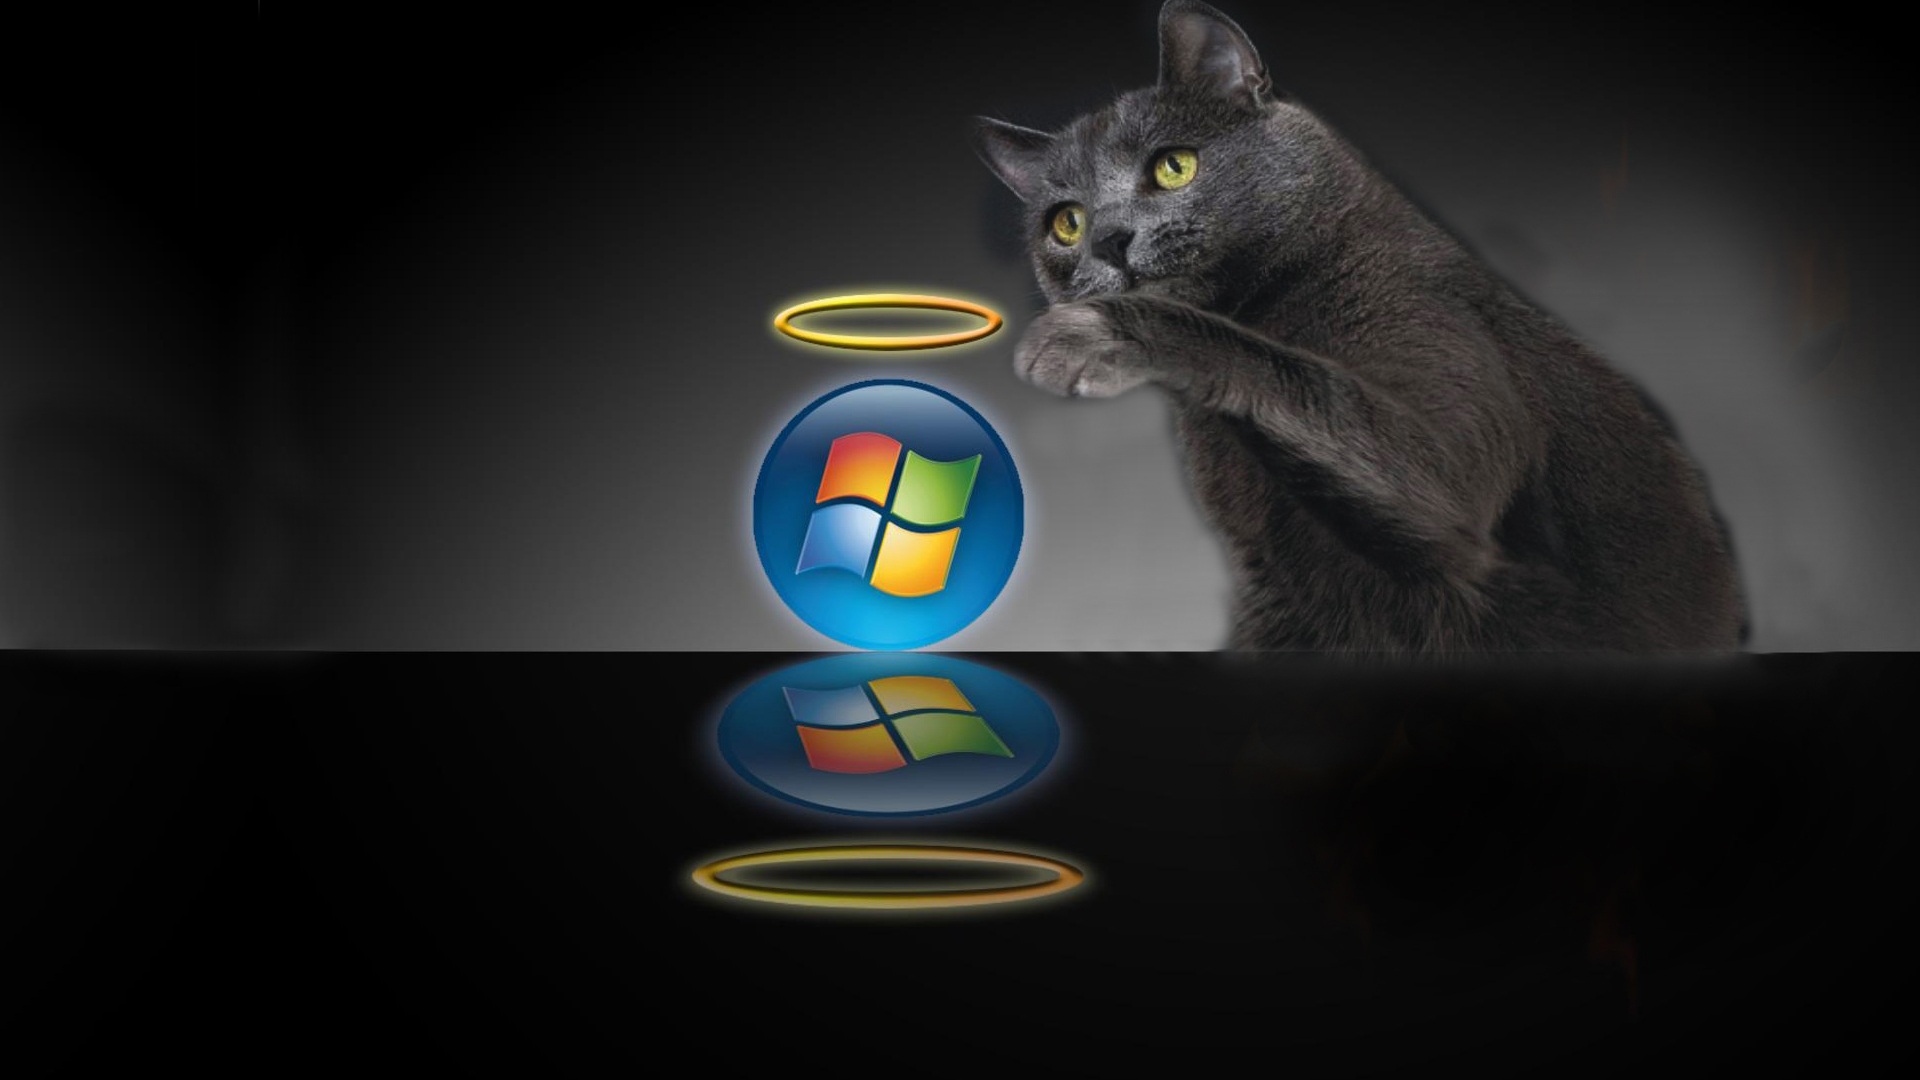 Kat windows